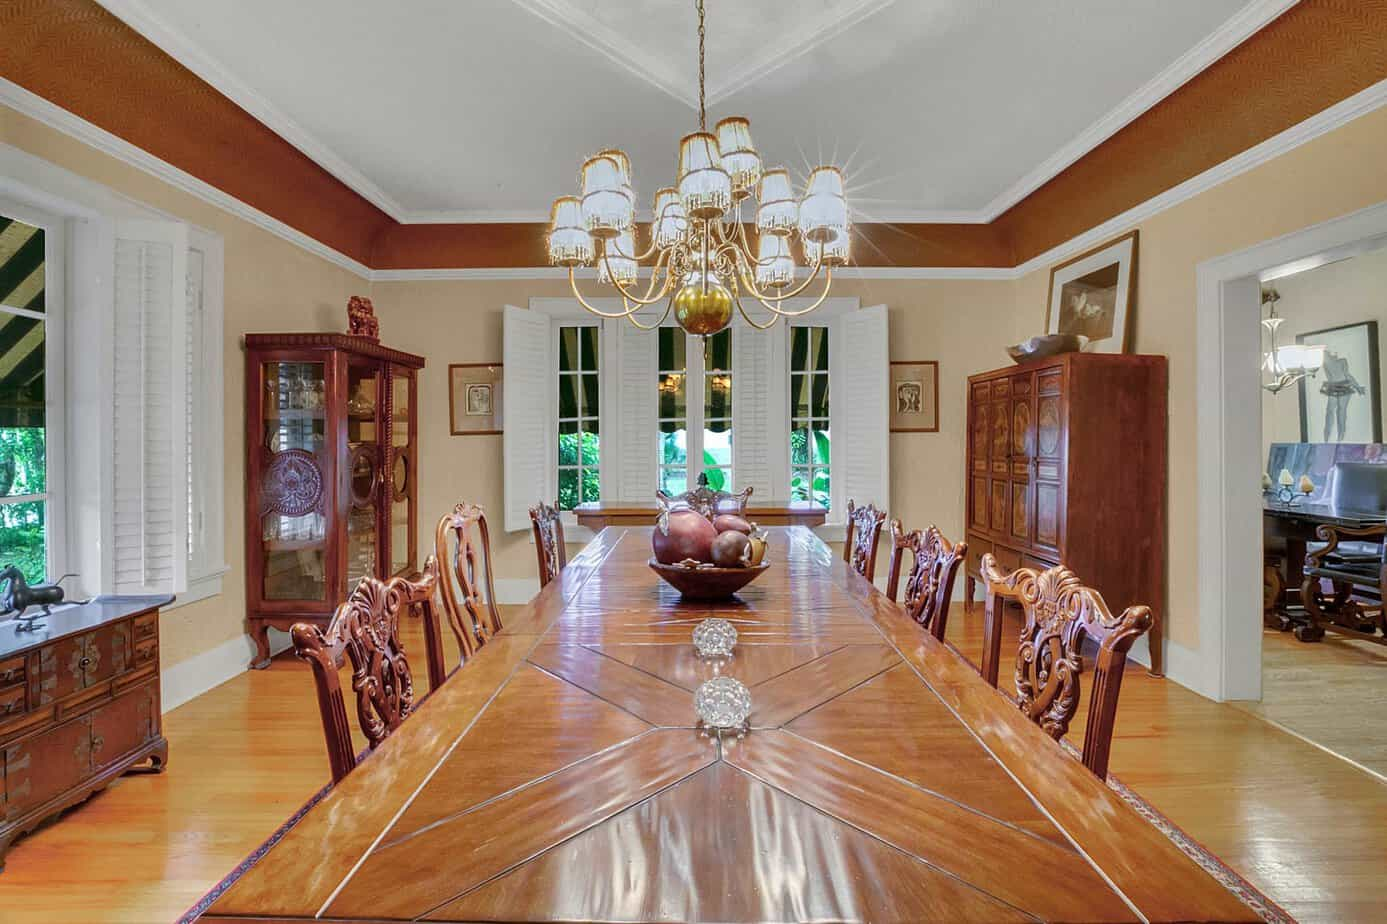 Formal 20 x 18 Dining Room With large dining table with that seats 10, wood floors, two large window, and decorative light fixture for the home for sale at 4024 W Bay To Bay Tampa FL 33629